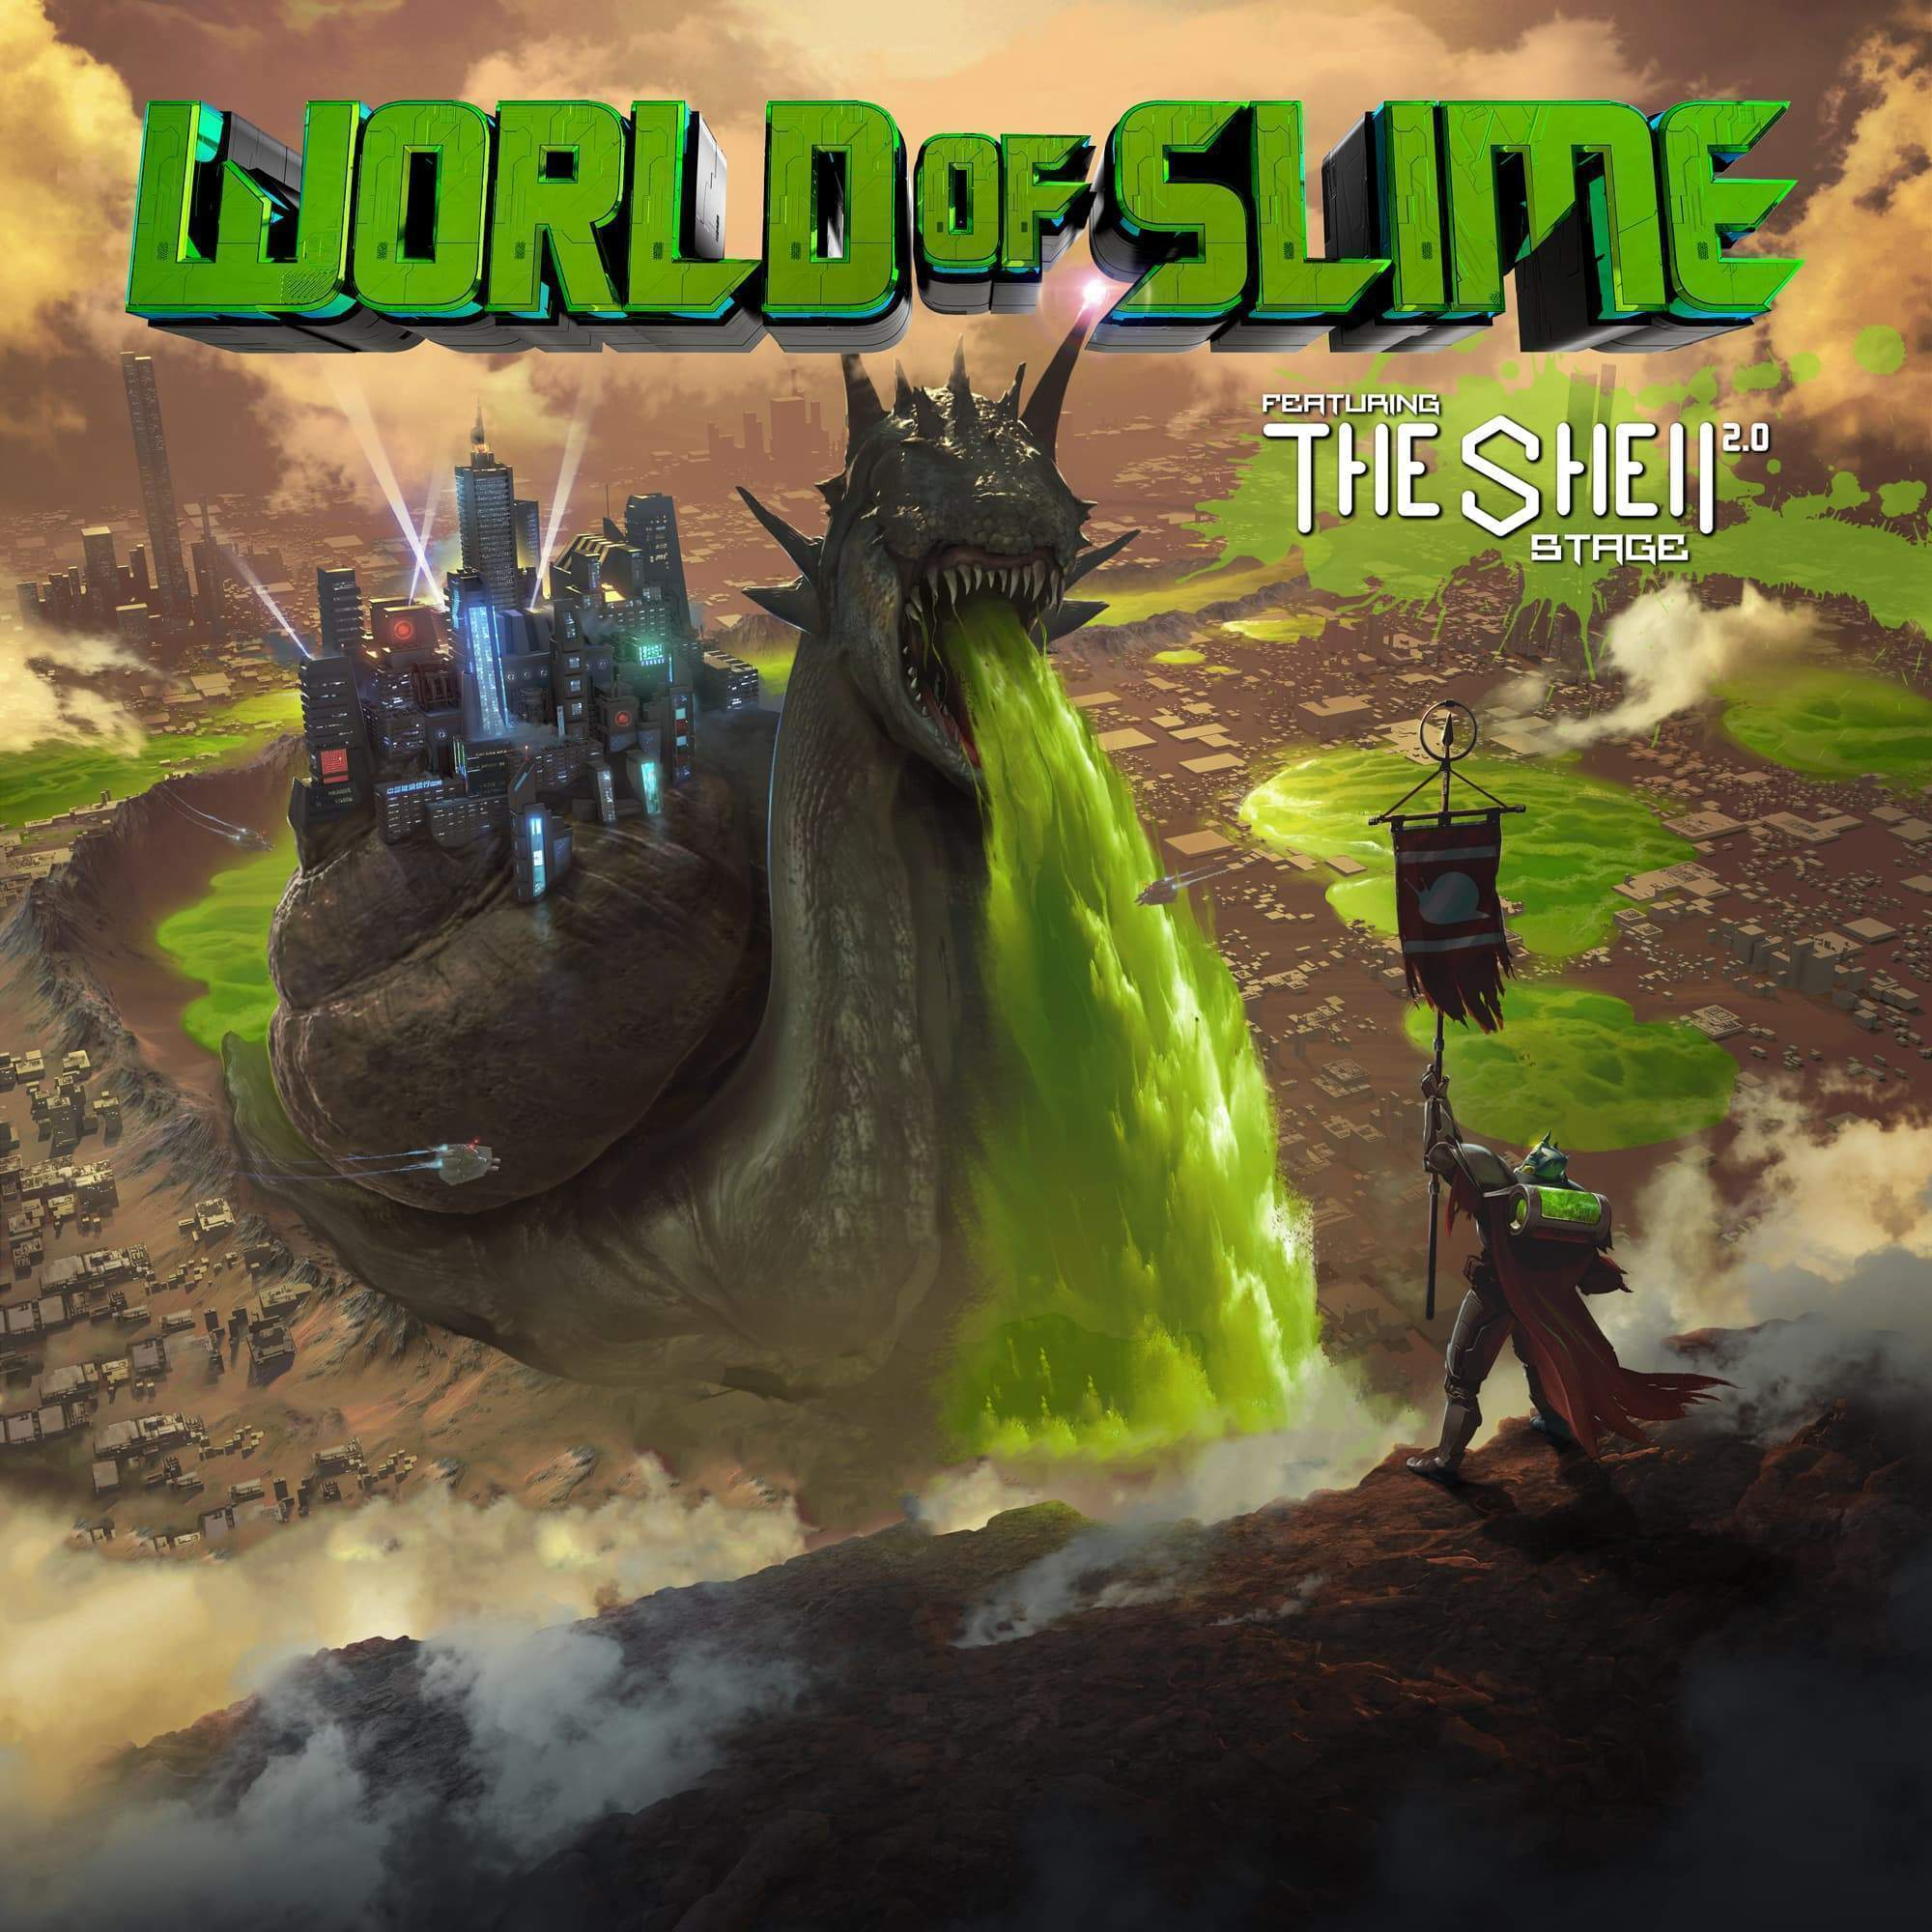 World Of Slime Tour - Hartford, CT - 12/12